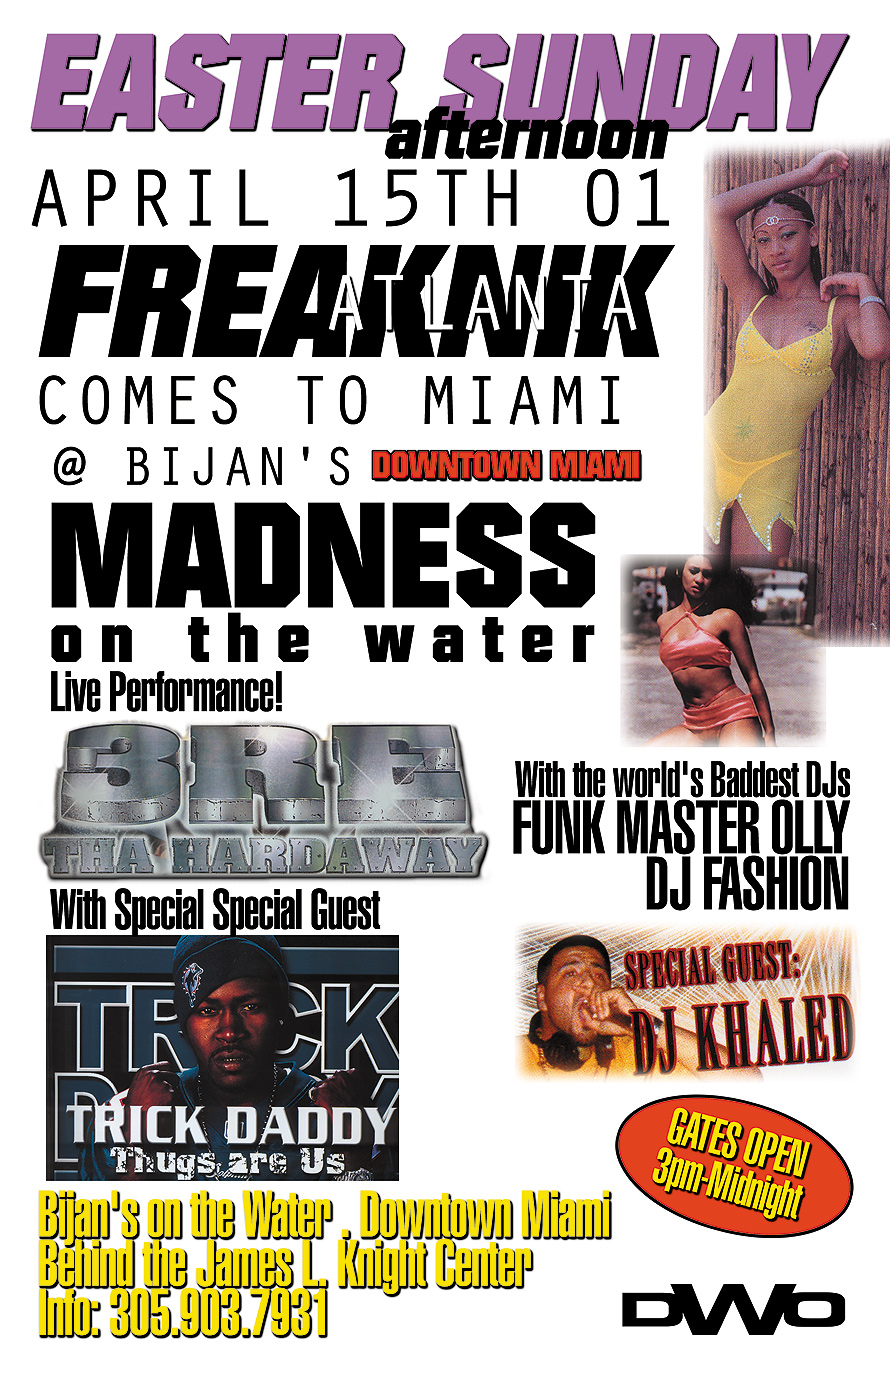 Freaknik Atlanta Easter Sunday at Bijan's on the Water